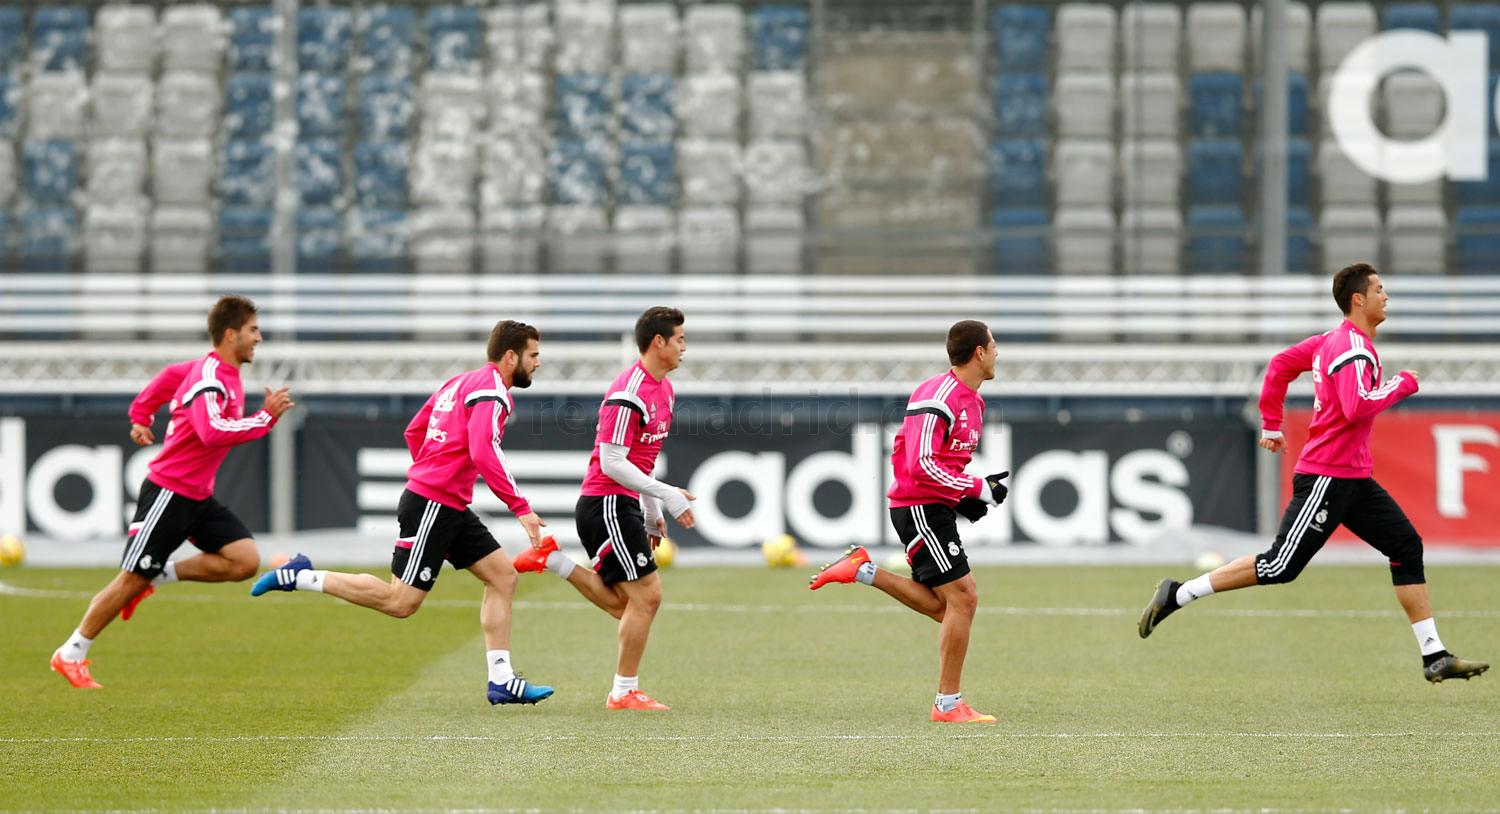 Real Madrid - Entrenamiento del Real Madrid - 26-01-2015